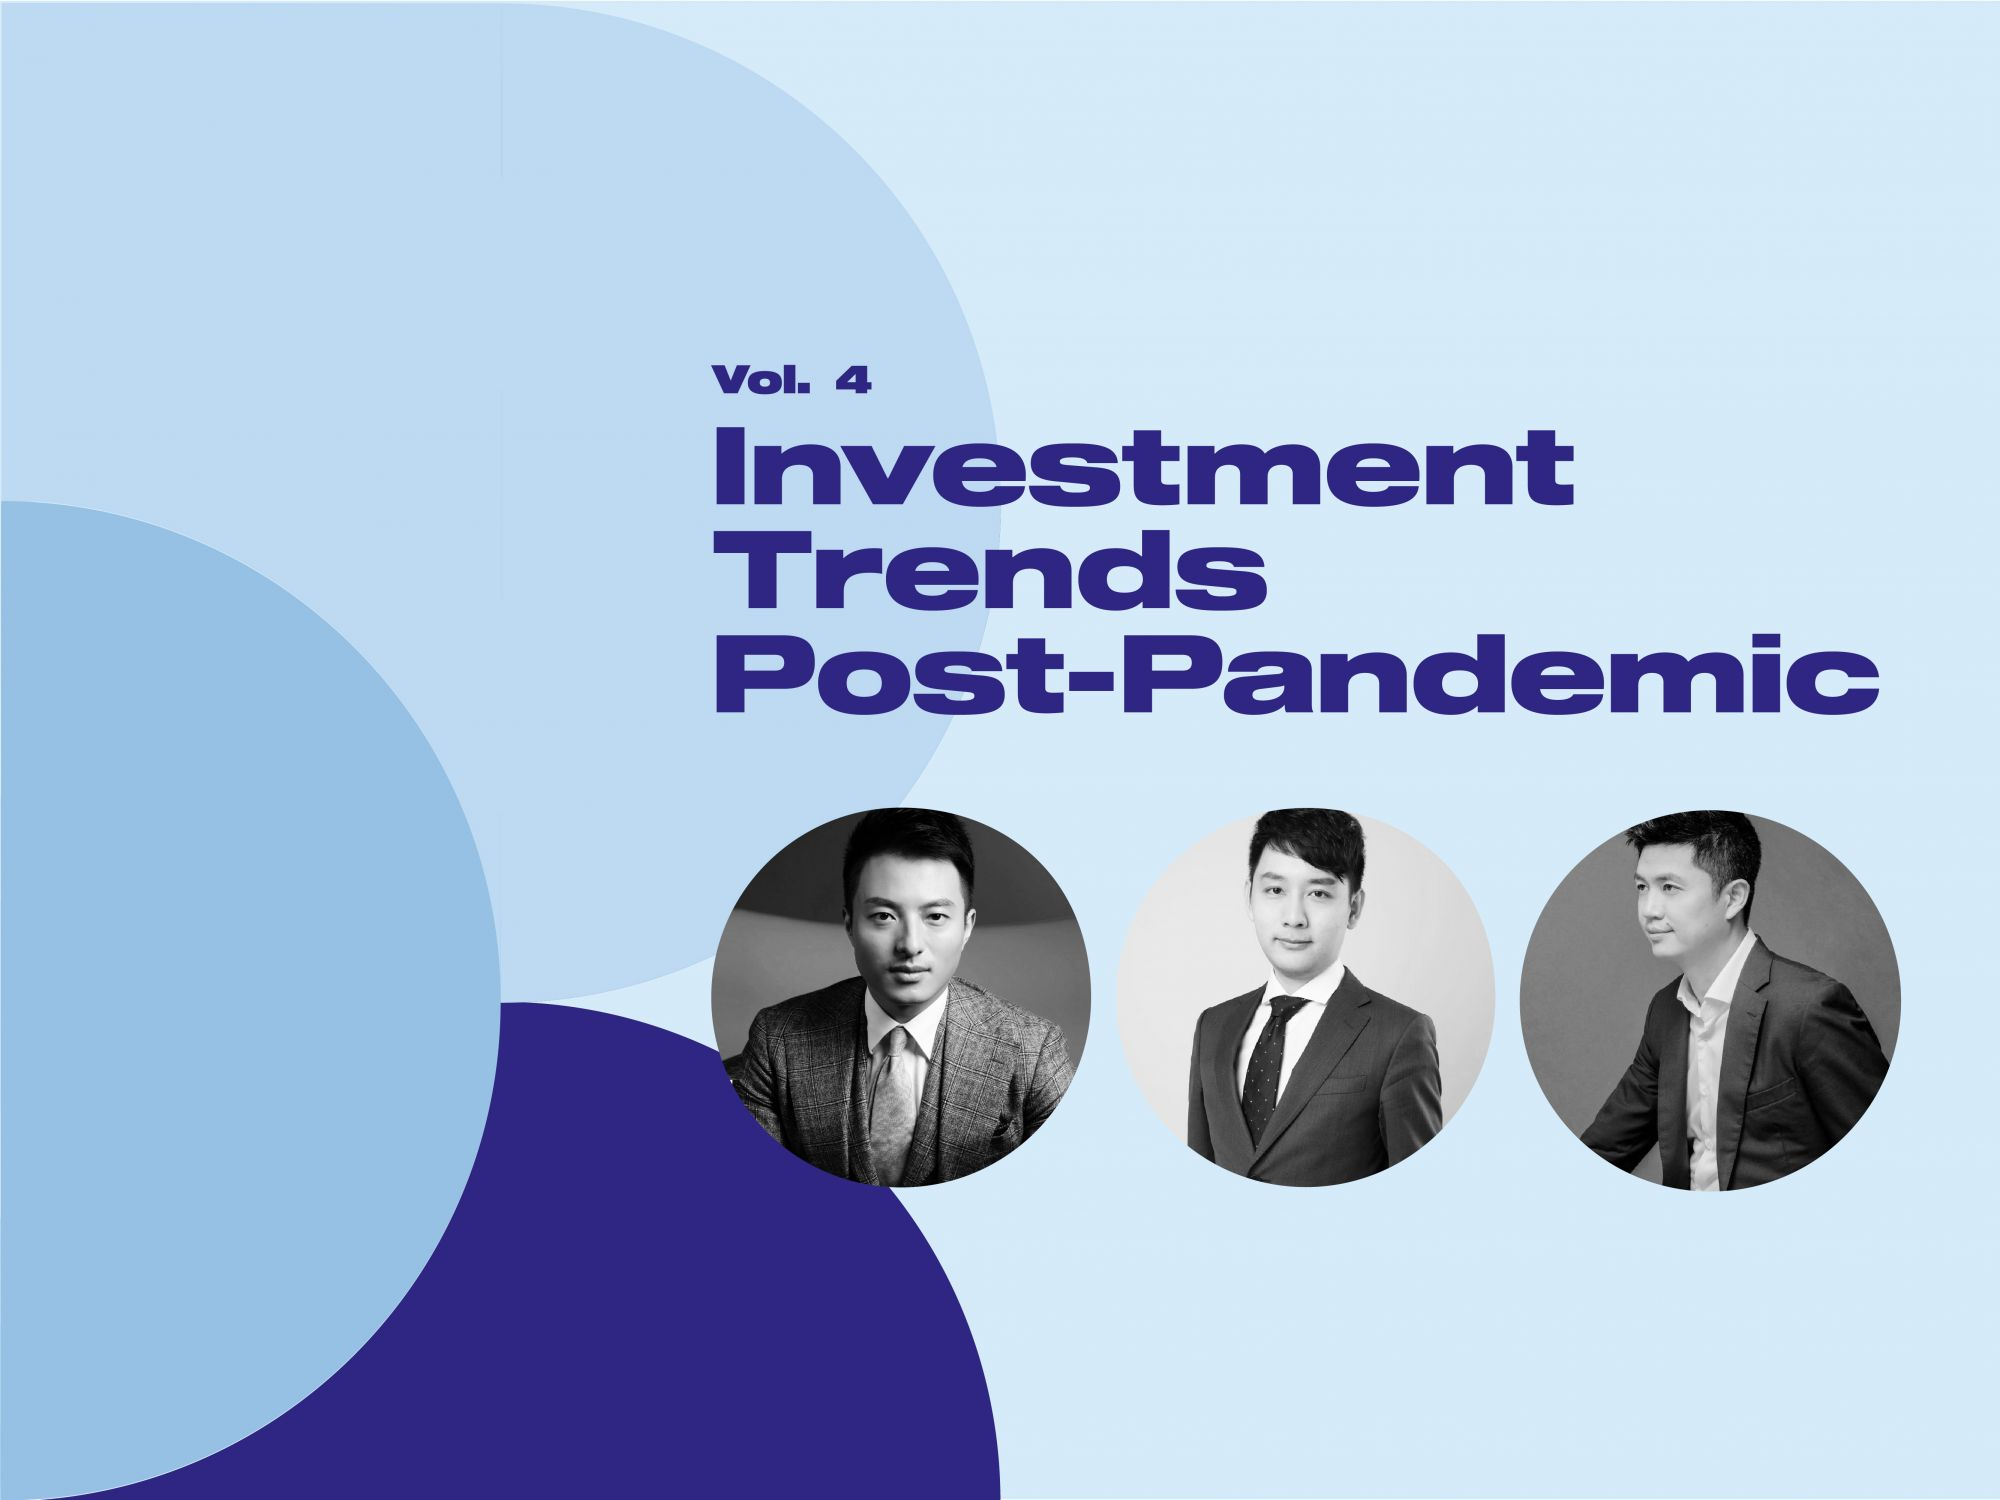 Cloud Talk: Investment Trends Post-Pandemic